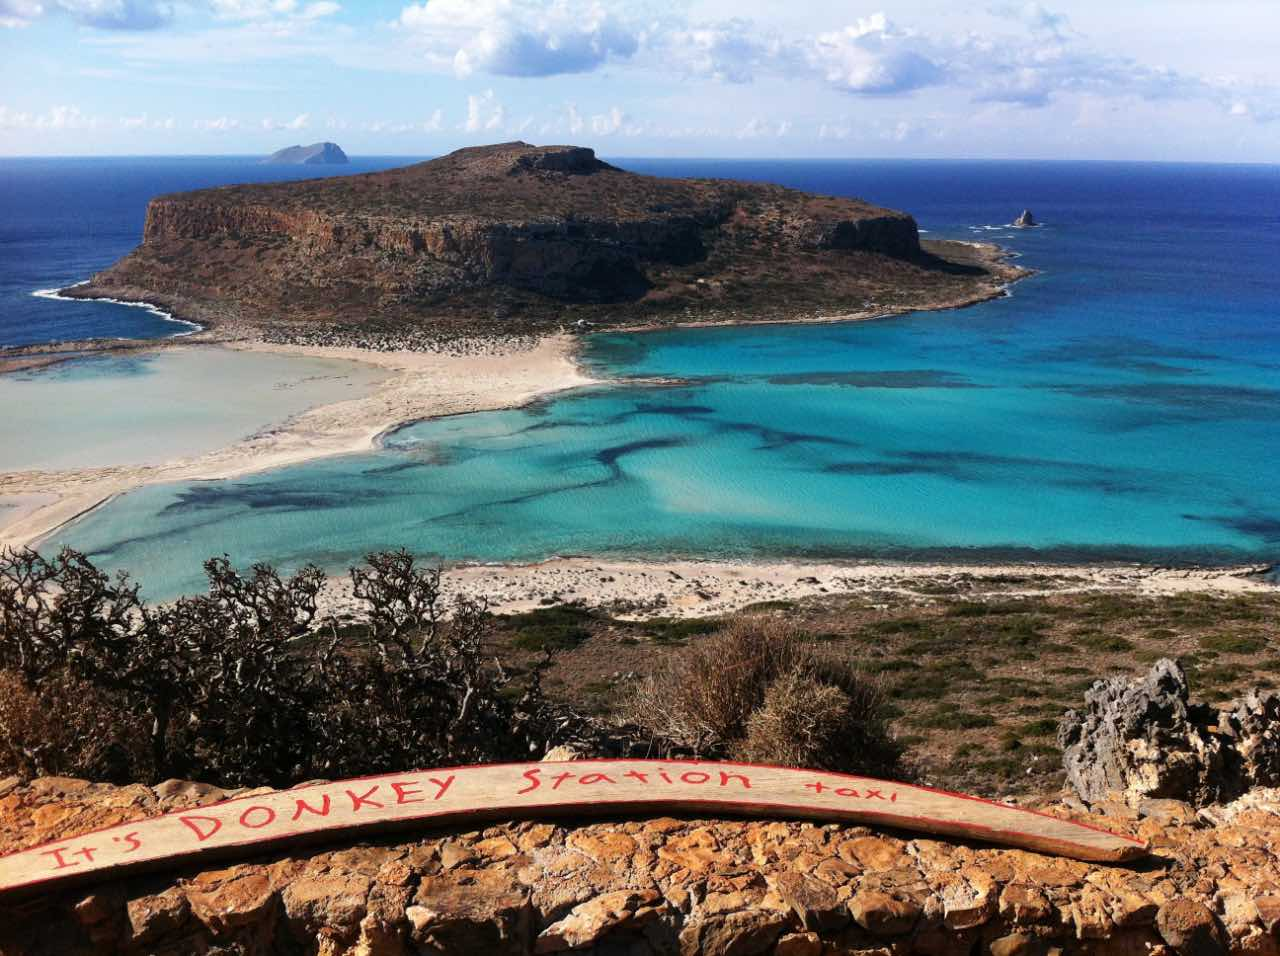 Shades of Blue Explore Balos Lagoon & Falassarna Beach, balos lagoon day tour, falassarna falasarna beach day tour, phalassarna beach daily tour from chania, activities for families chania, private tours covid 19 crete, best activity chania crete